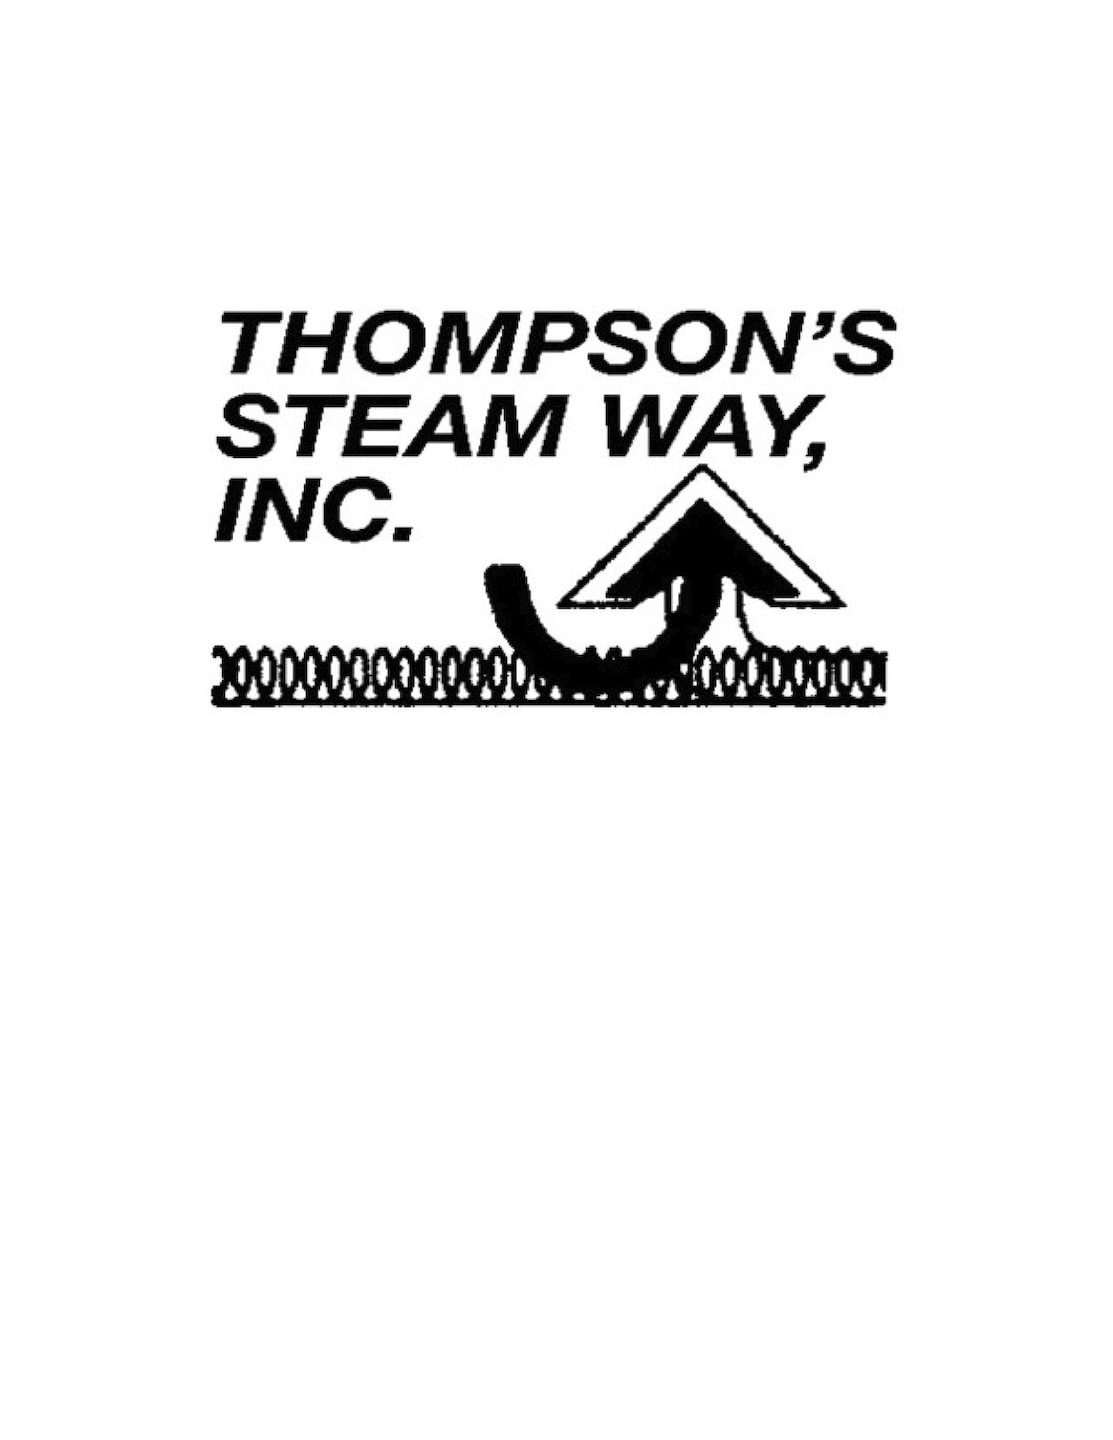 THOMPSON'S STEAM WAY, INC.